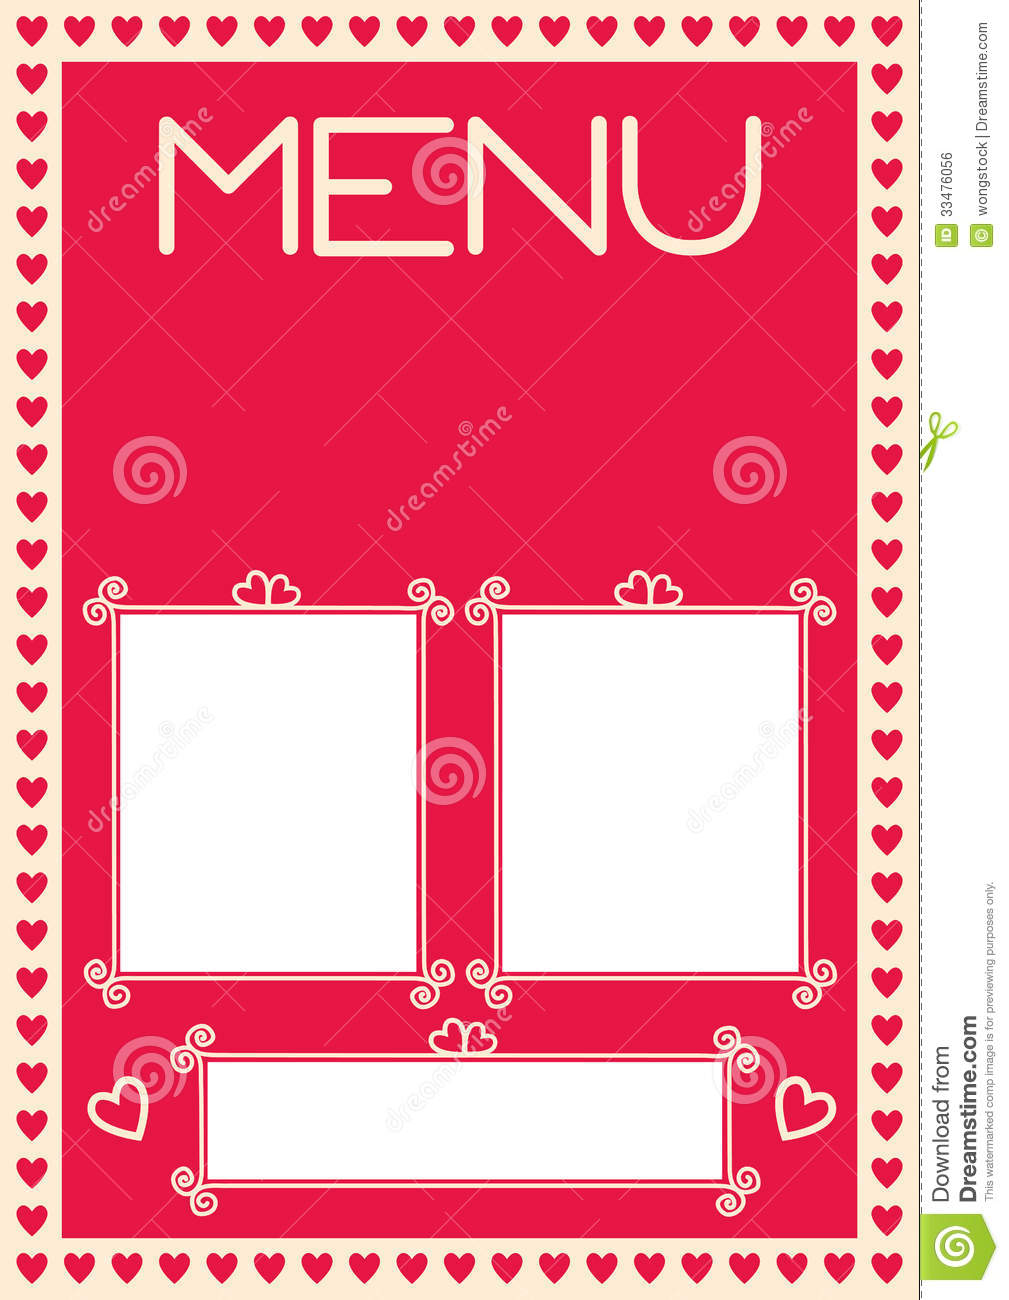 Valentine's Menu Template With Heart Borders Royalty Free Stock Image ...